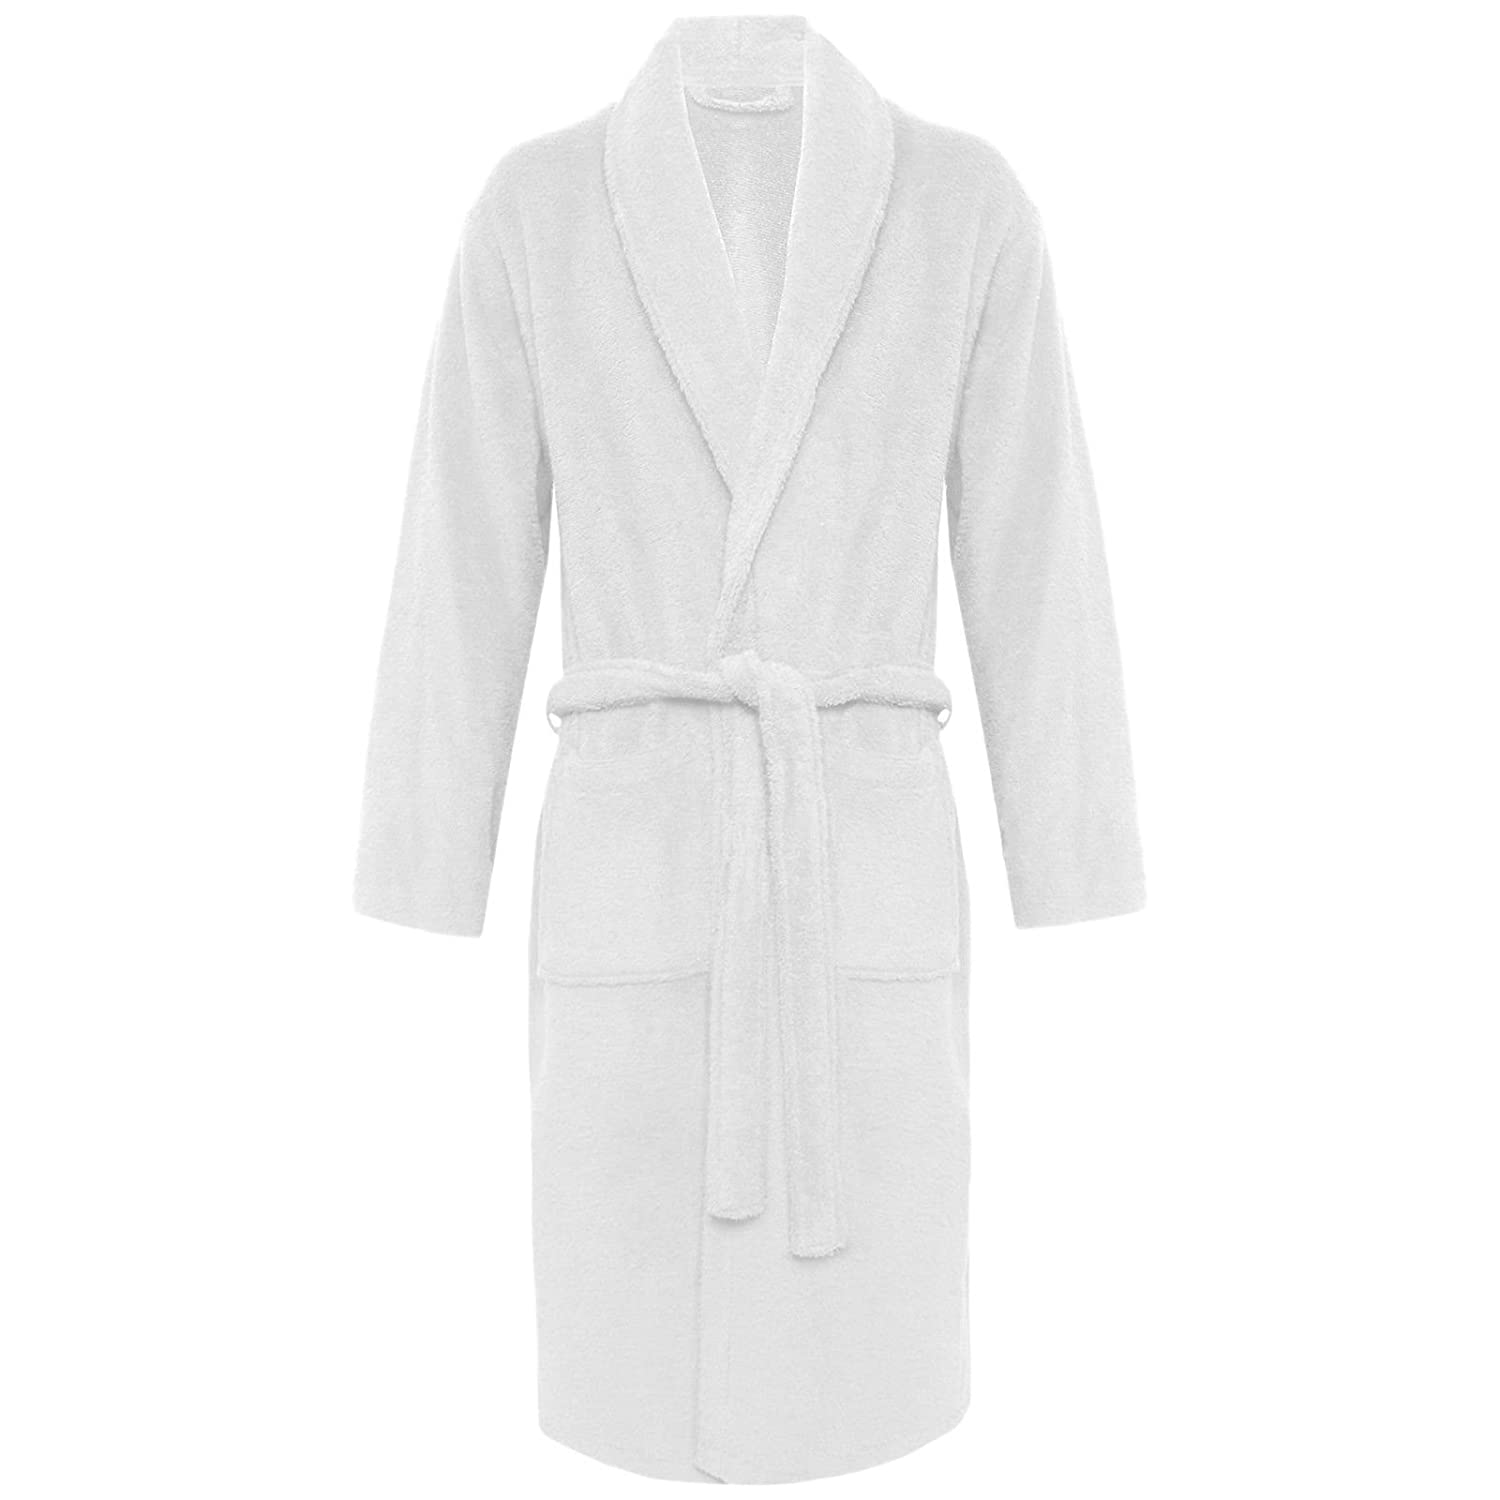 f985c99216 MyShoeStore Womens Mens 100 % Luxury Egyptian Cotton Super Soft Terry  Towelling Bath Robe Unisex